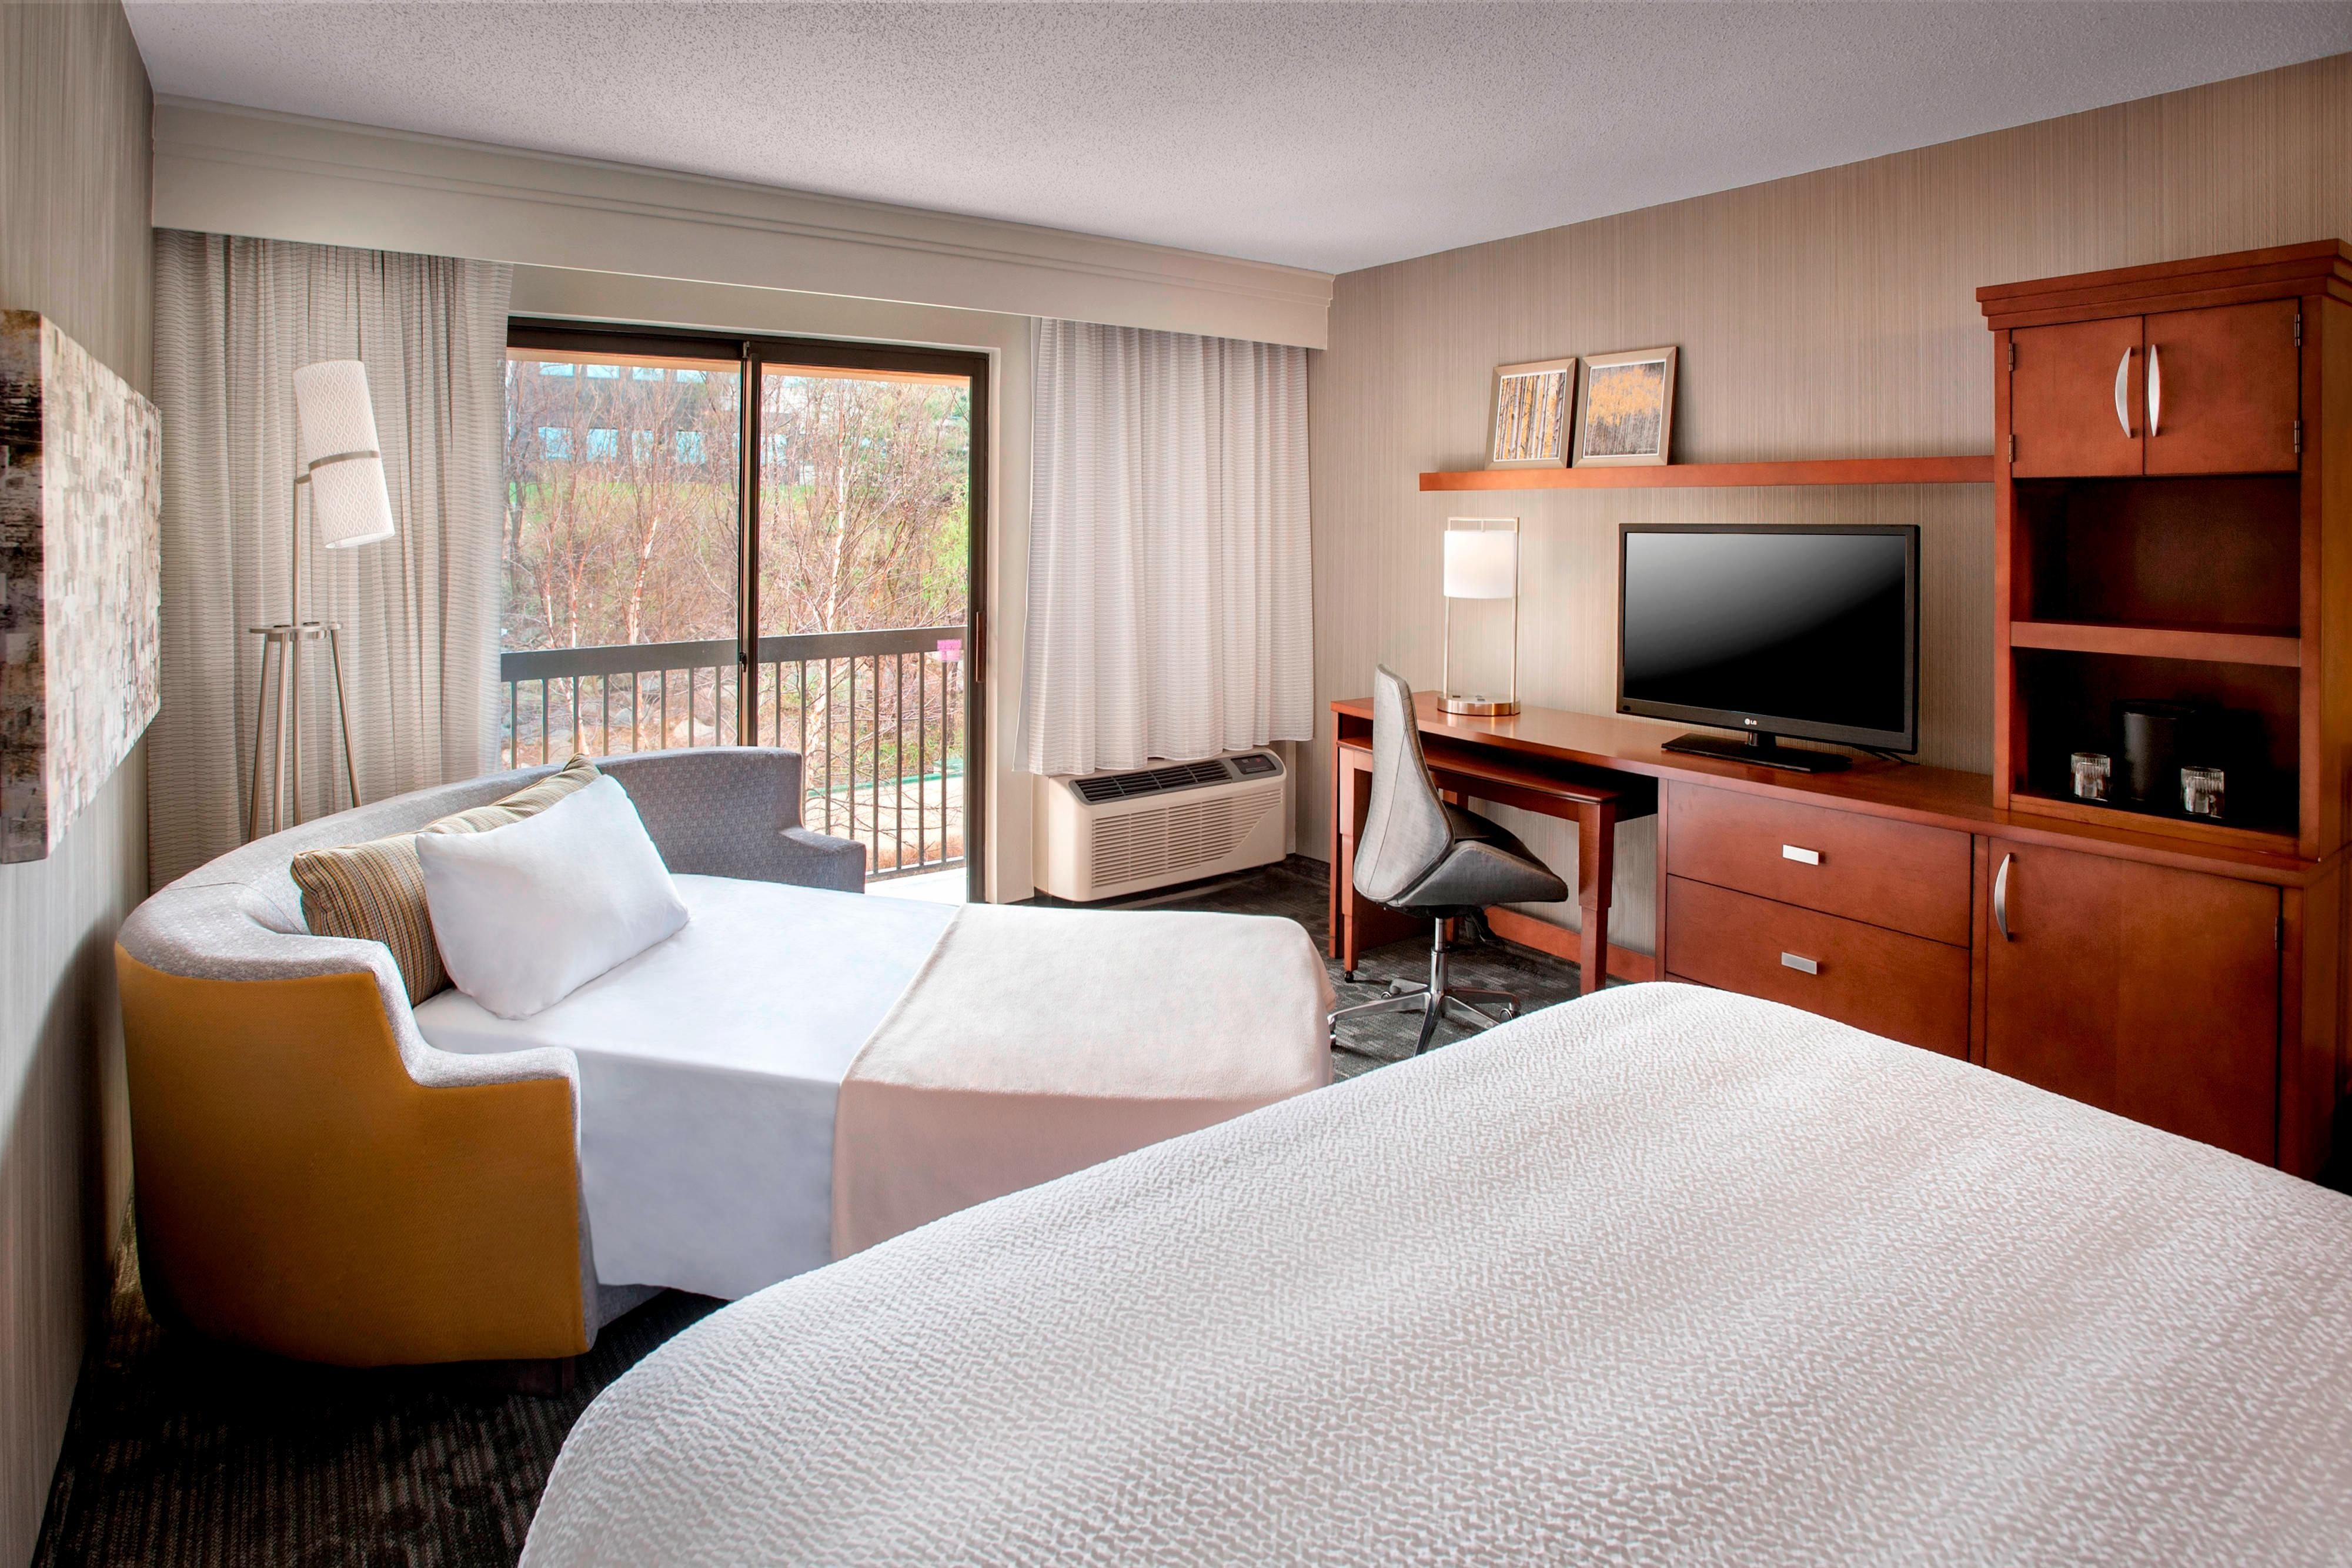 Parsippany Suites And Hotel Rooms In New Jersey